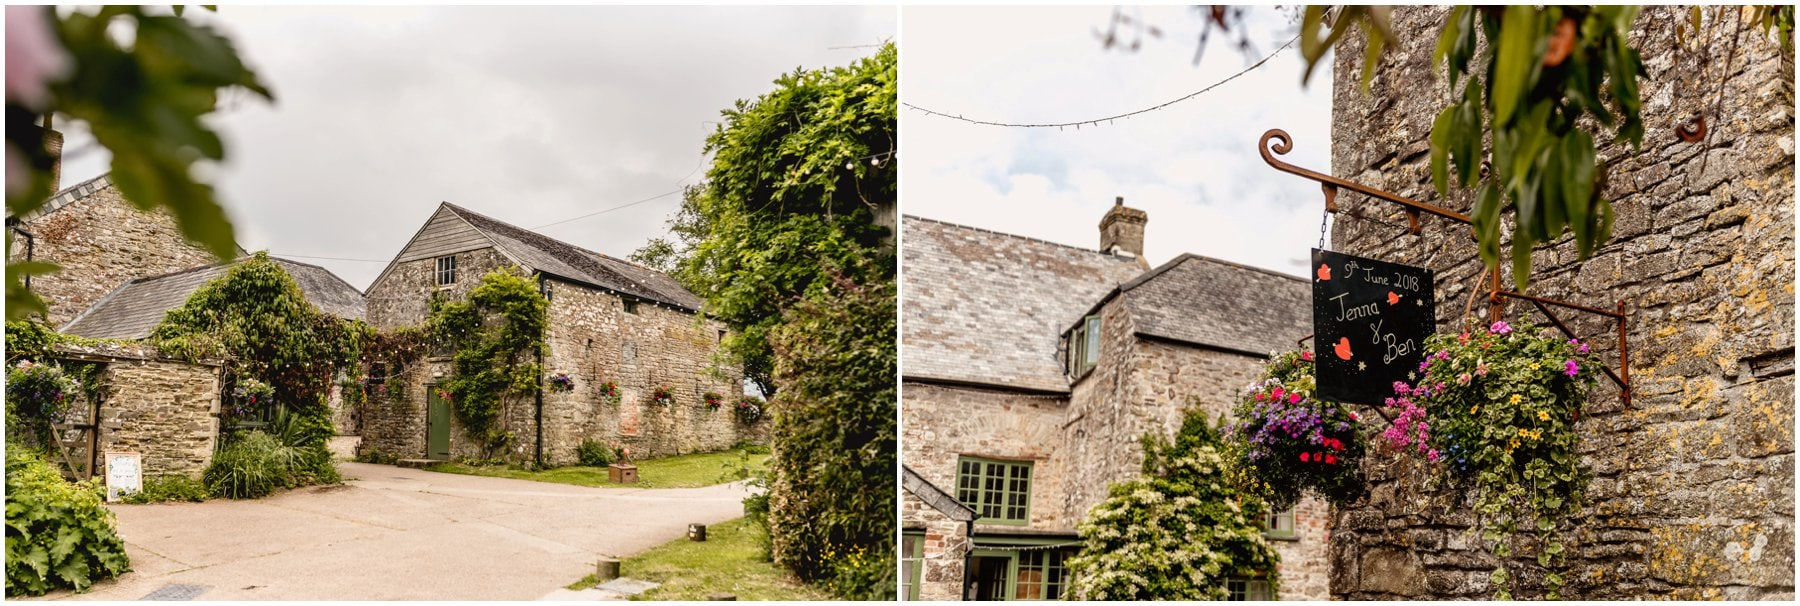 Exterior view of the Ash Barton Estate in Devon ahead of Jenna and Ben's wedding